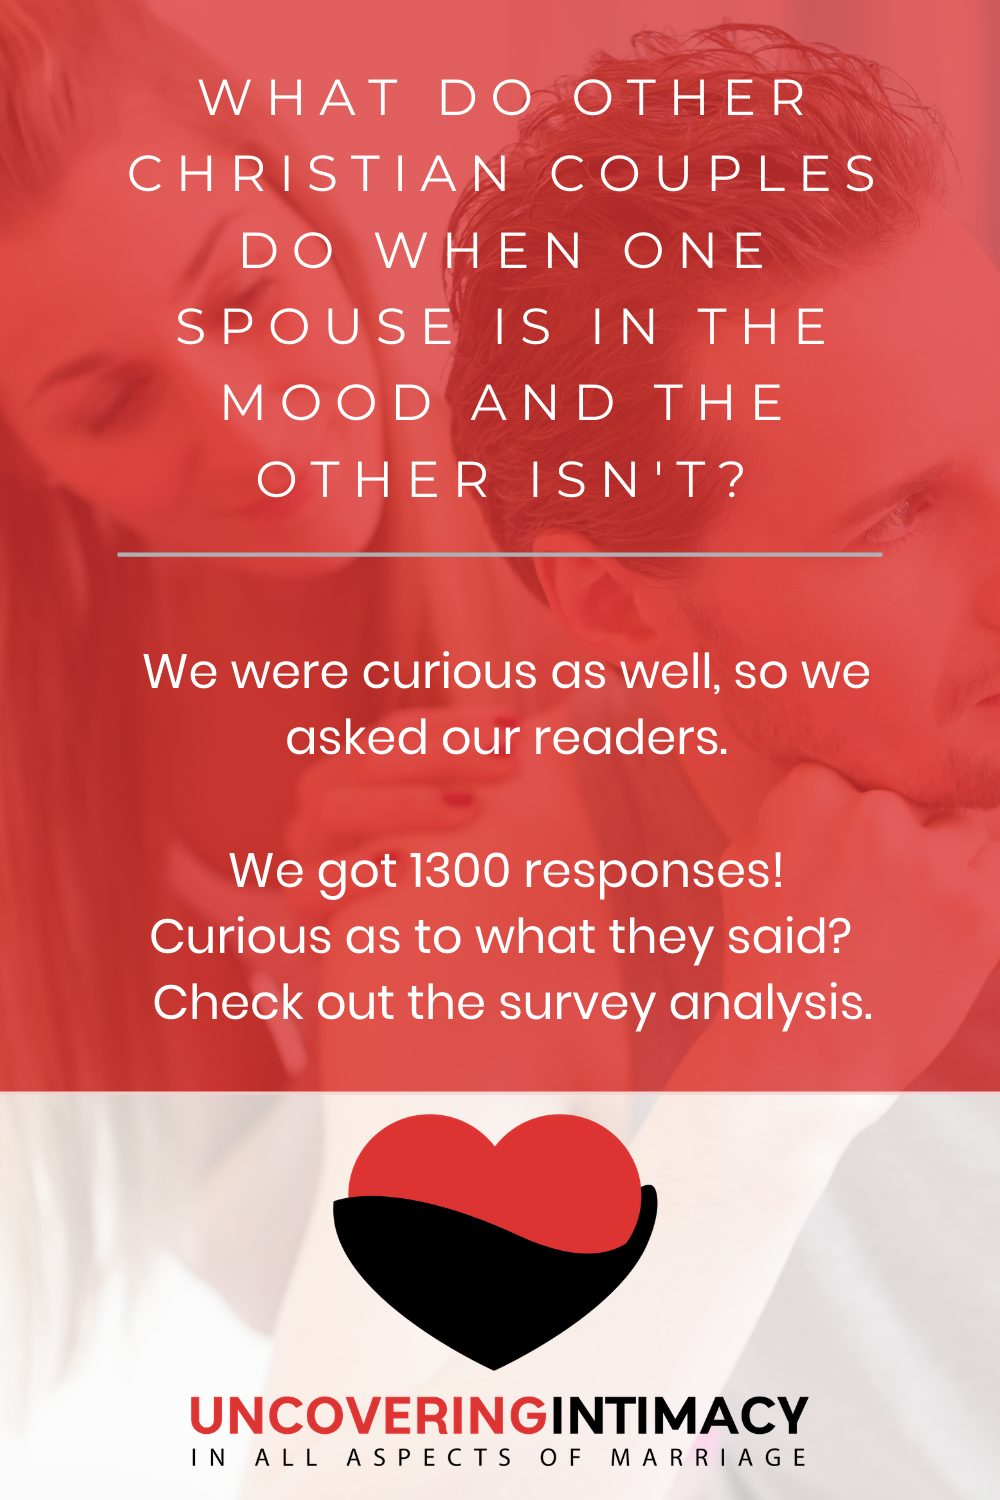 What do other Christian couples do when on espouse is in the mood and the other isn't?  We were curious as well, so we asked our readers.  We got 1300 responses!  Curious as to what they said?  Check out the survey analysis.